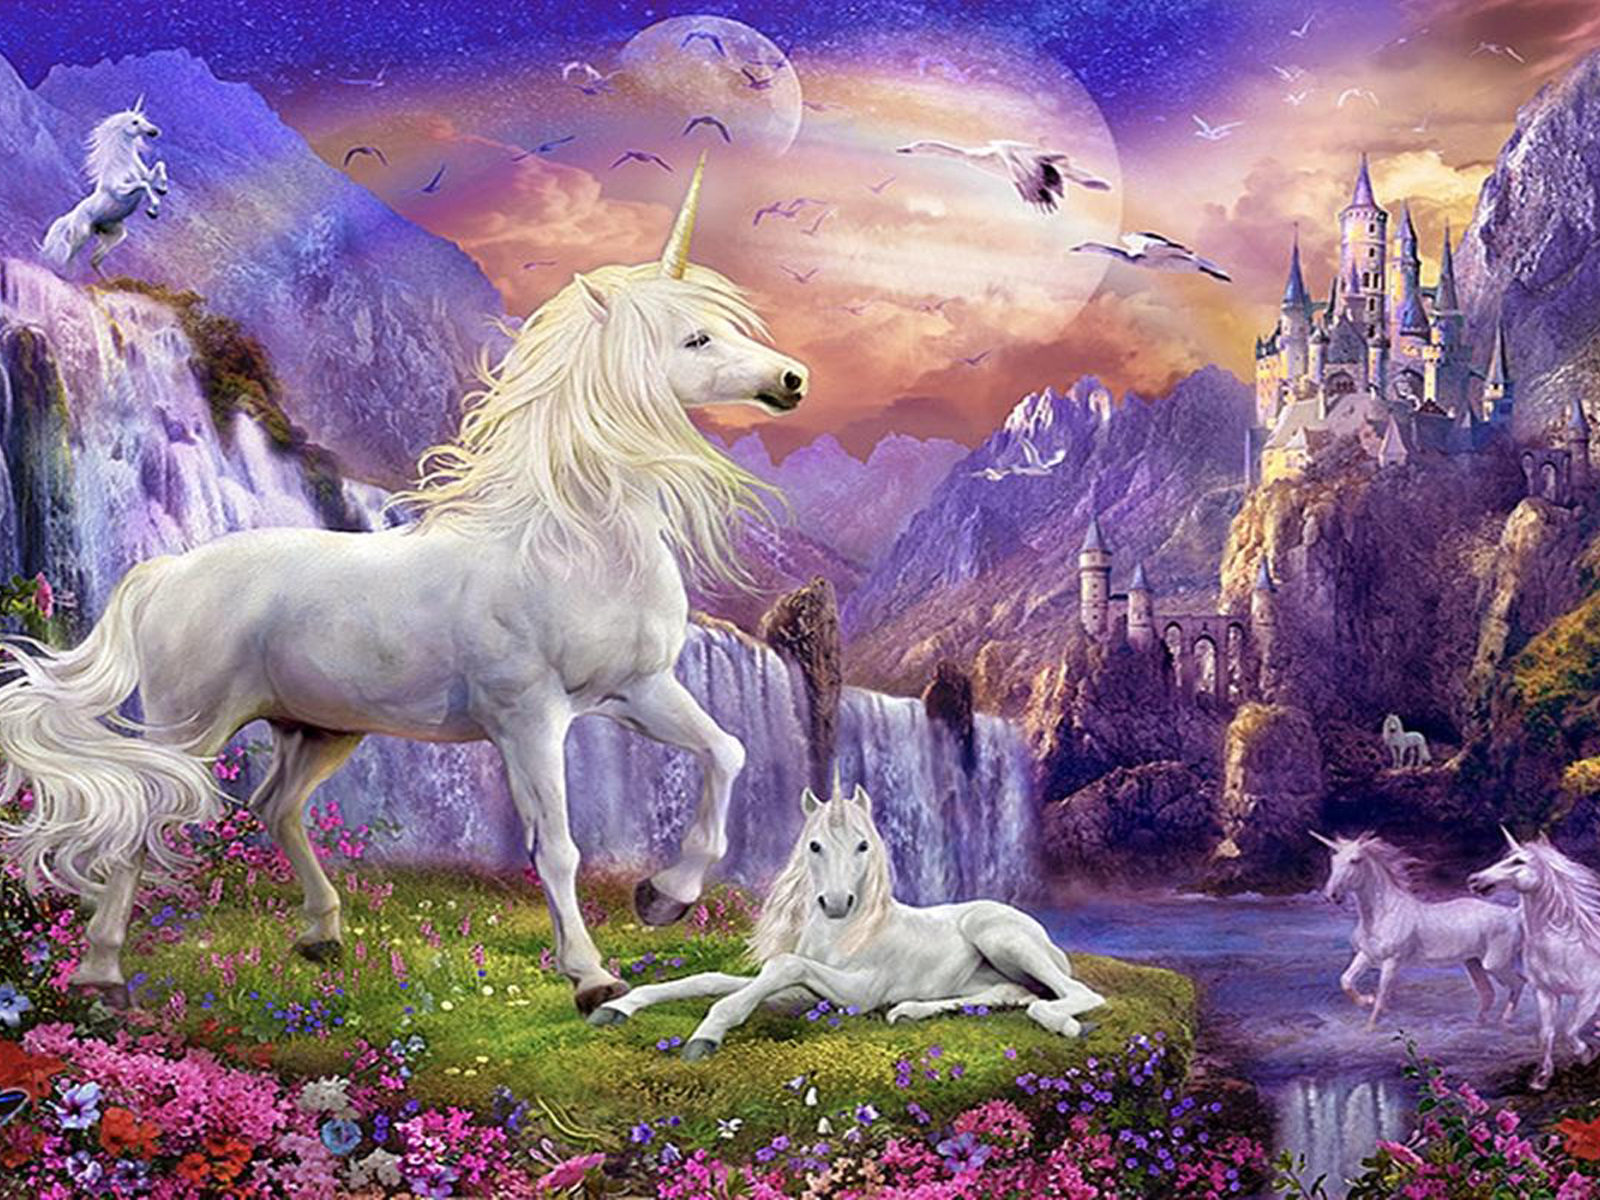 Cute Wallpapers Hd Baby Fantasy Wallpaper Hd Unicorns Horse Castles Waterfalls